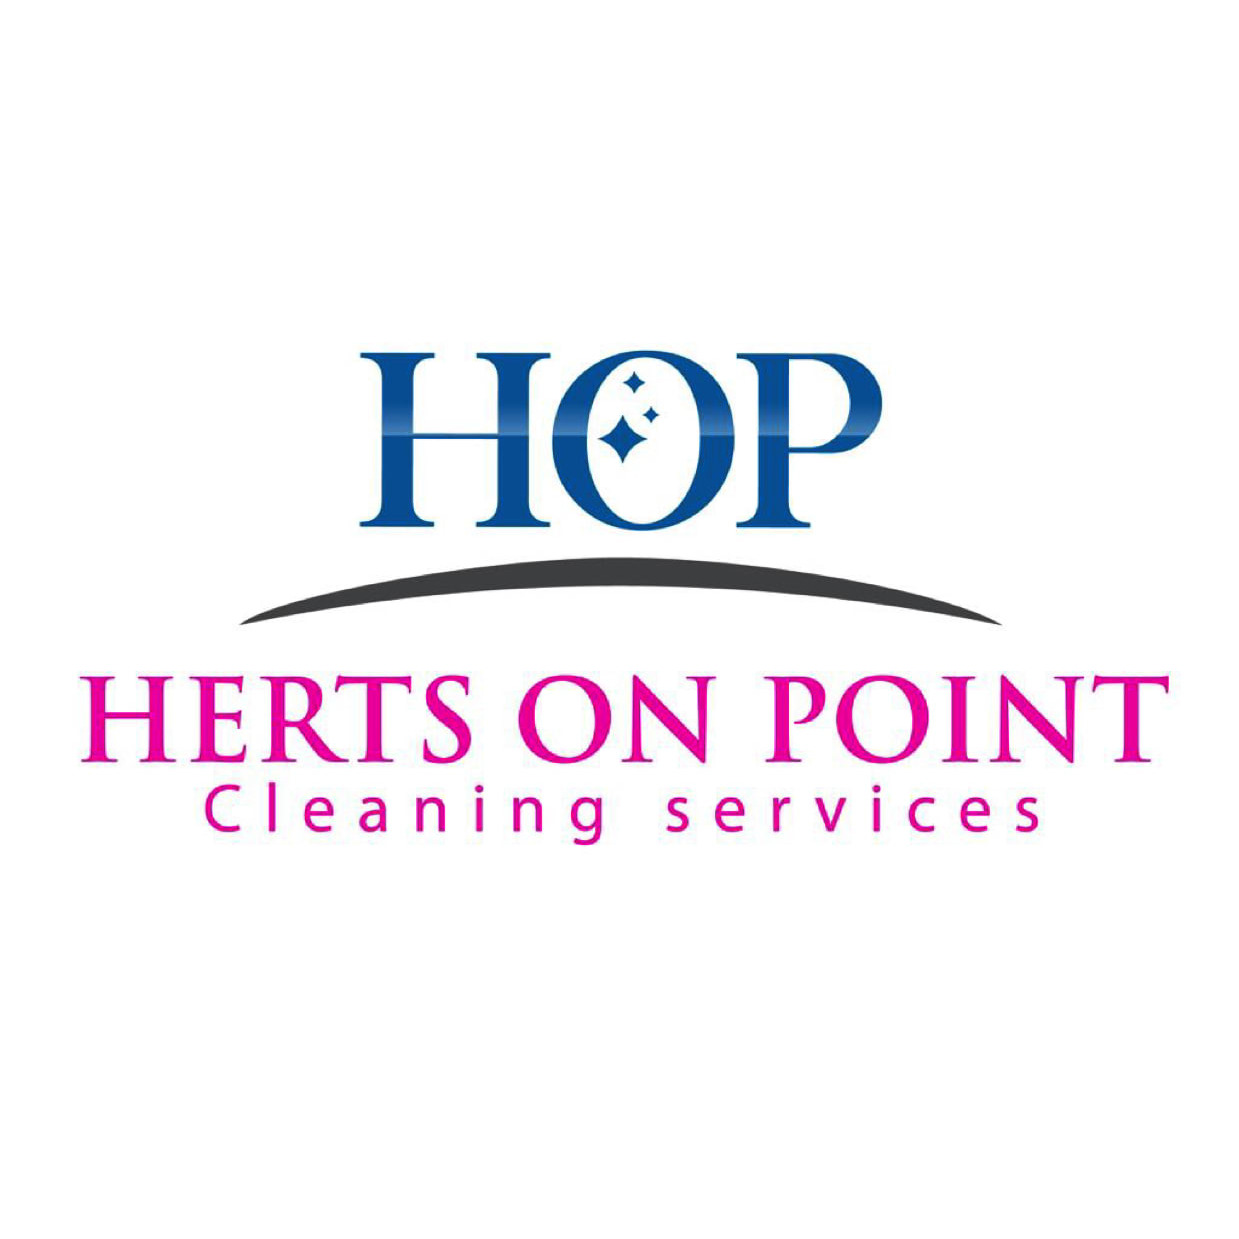 Herts on Point Cleaning Service Ltd